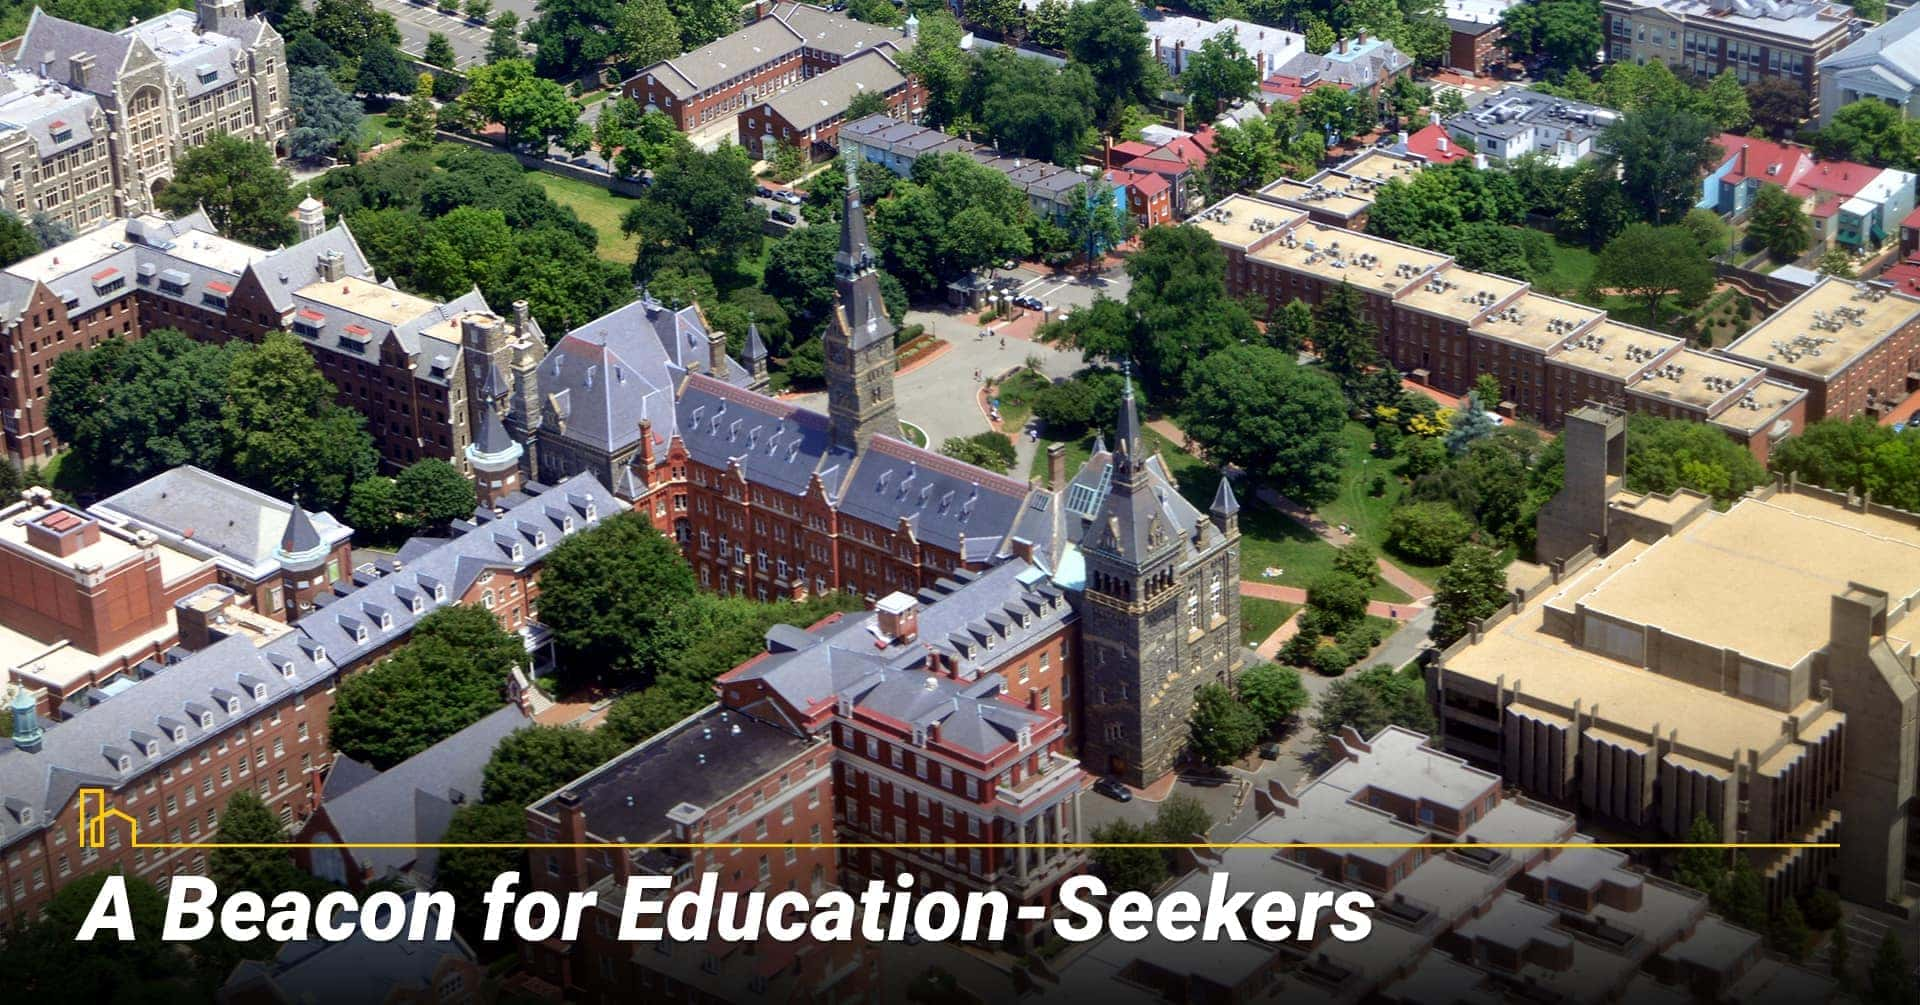 A Beacon for Education-Seekers in Washington, DC